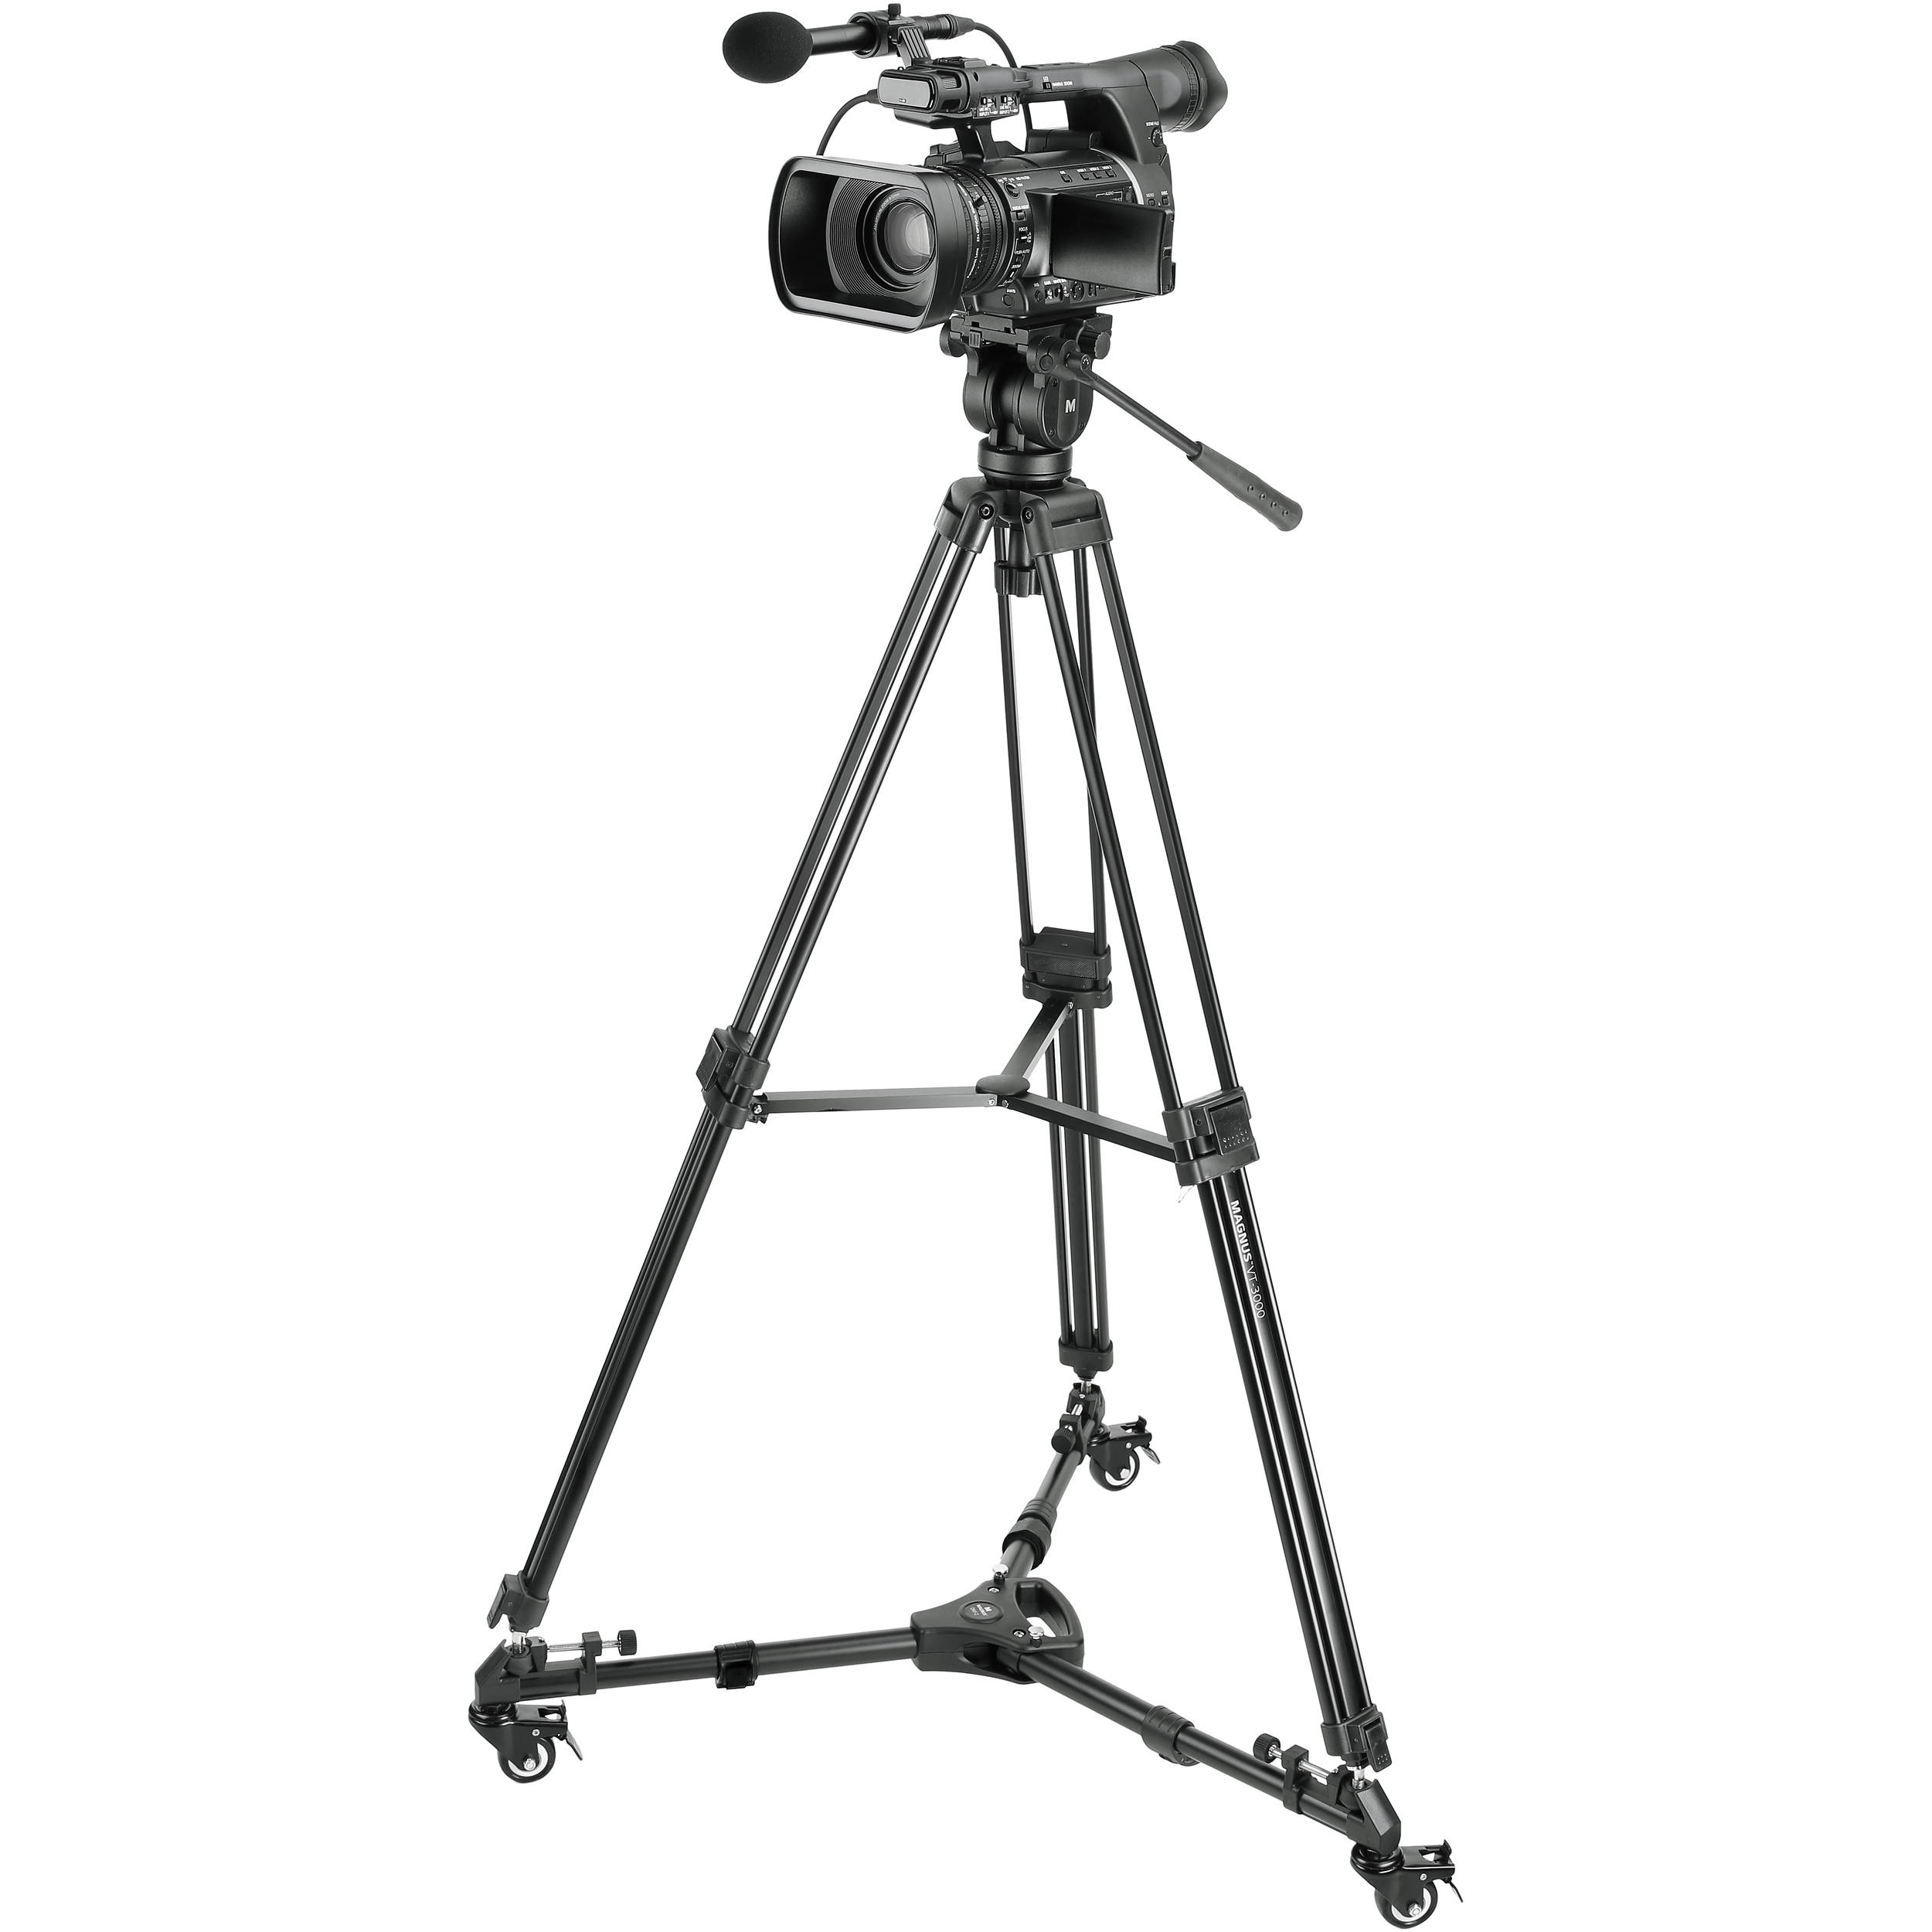 Magnus Vt 3000 Tripod With Fluid Head And Tripod Dolly